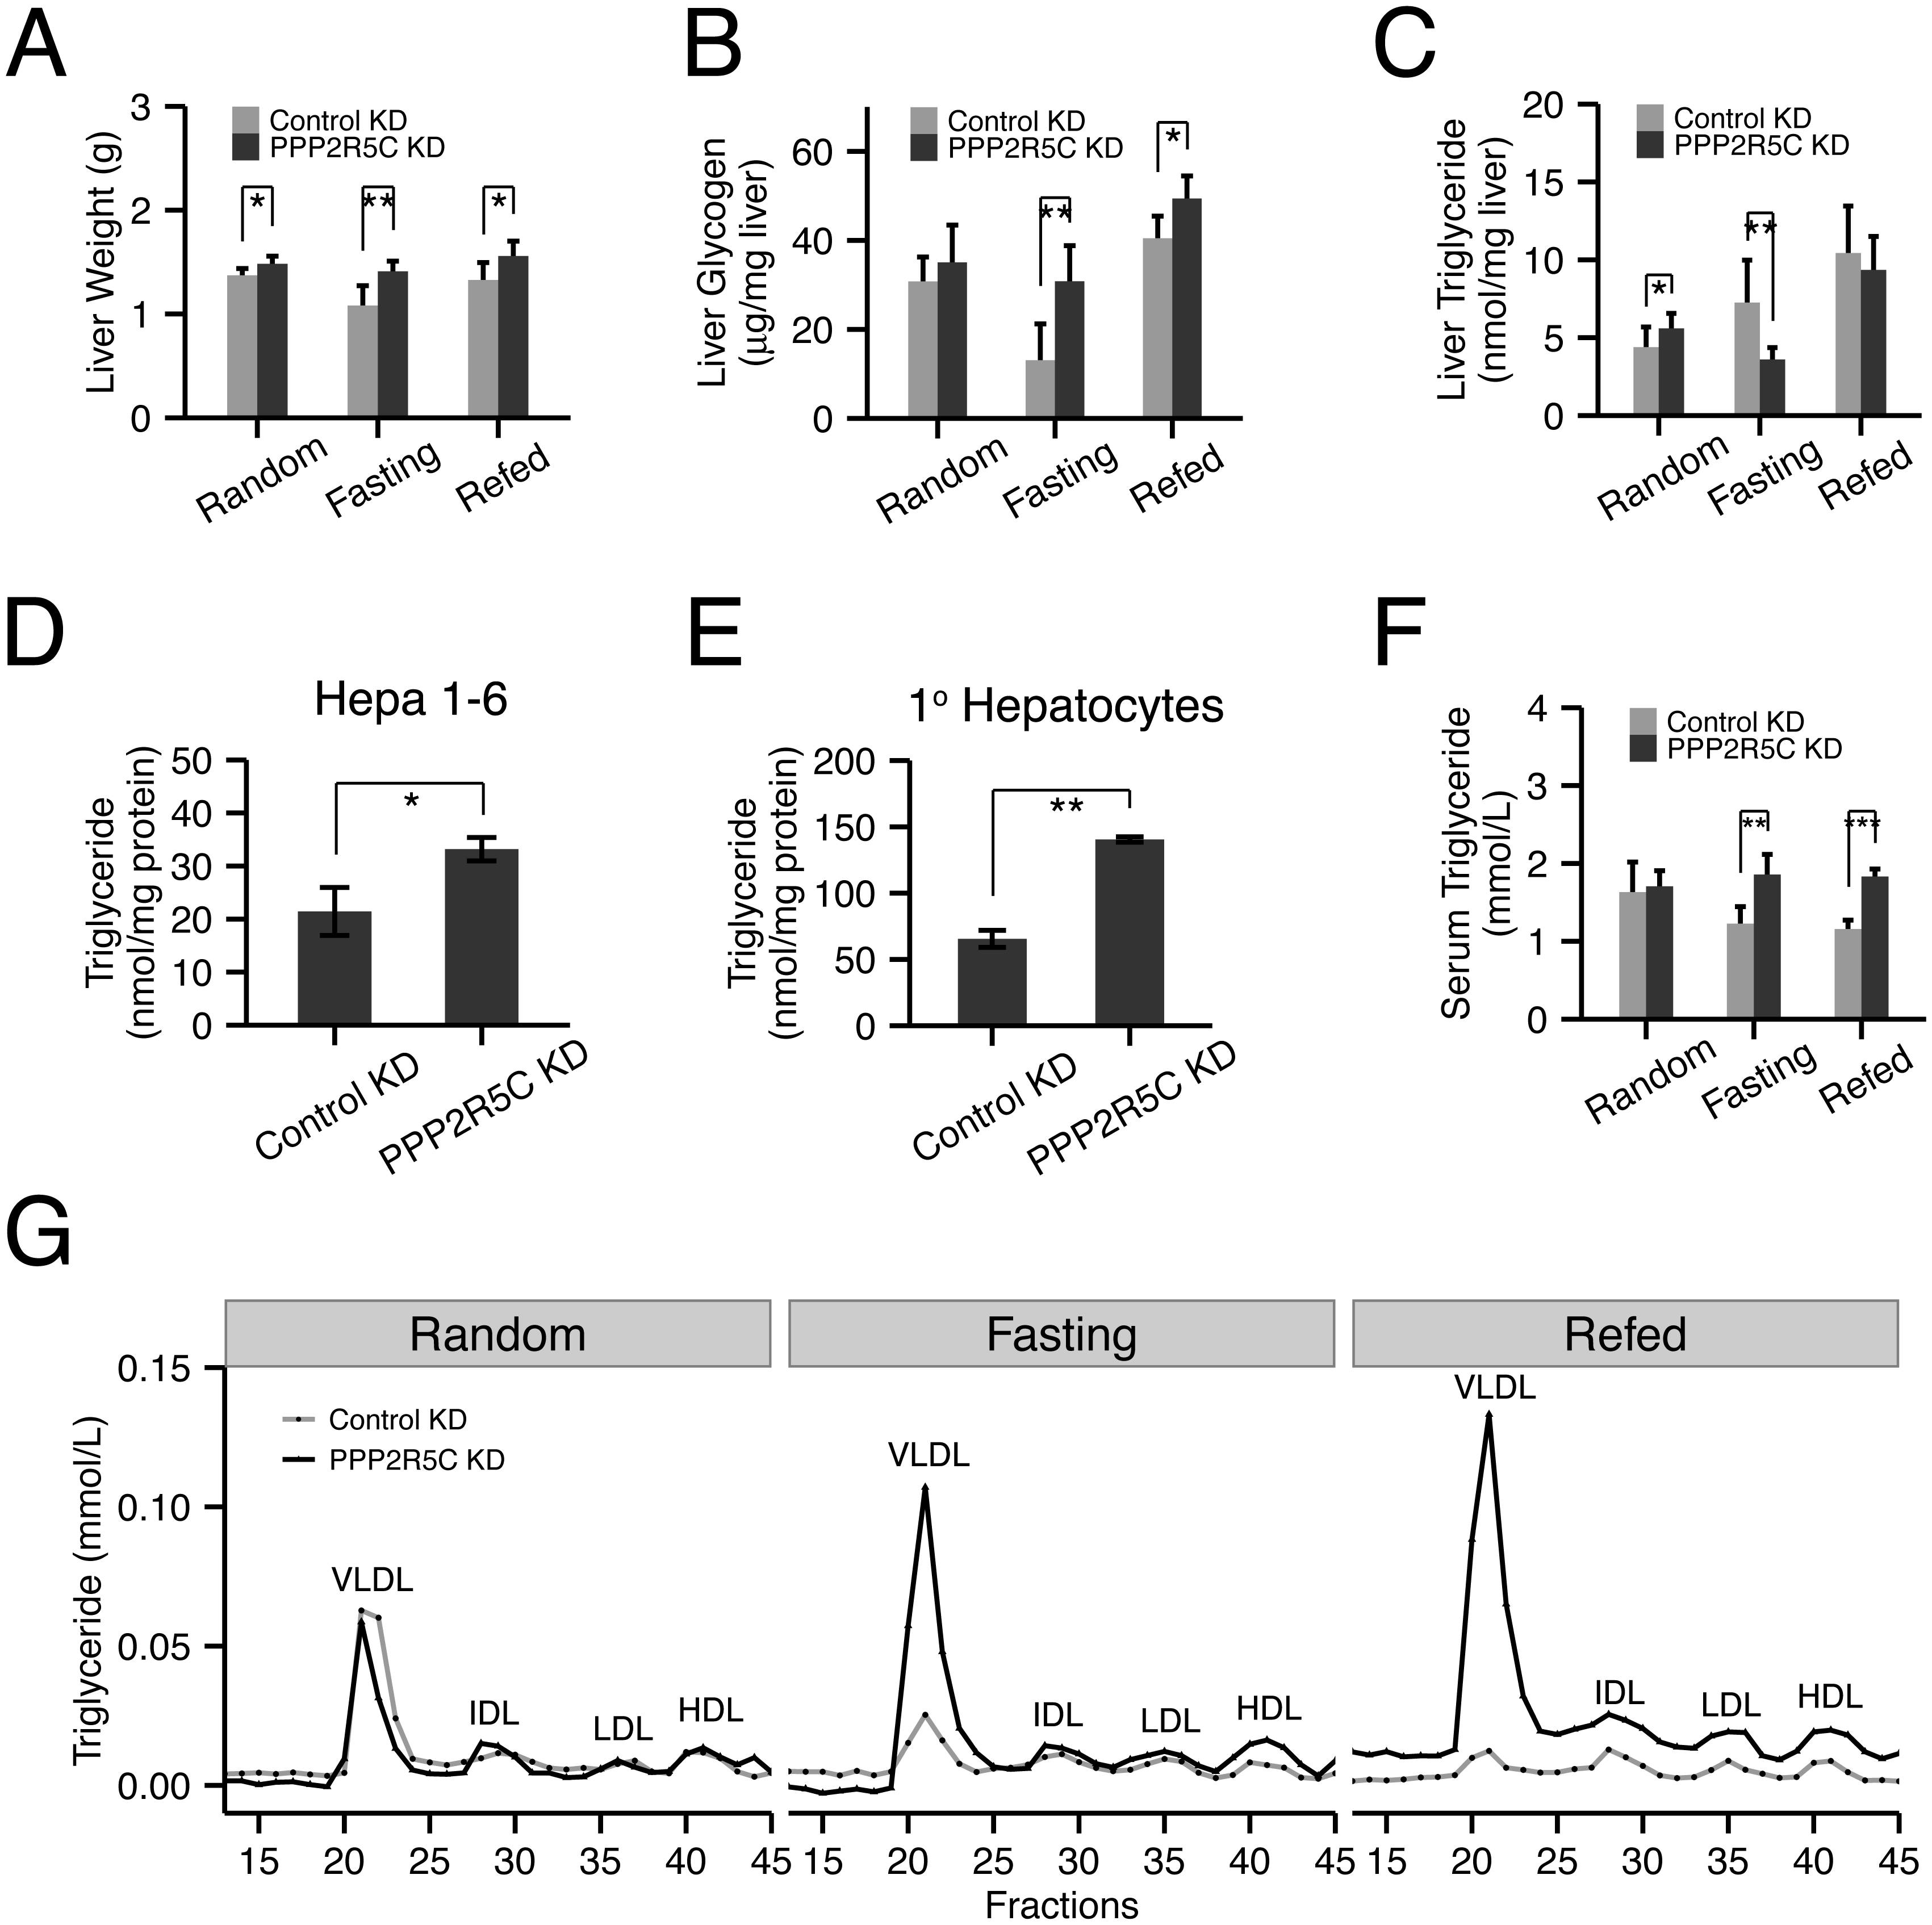 Hepatocyte-specific knockdown of PPP2R5C leads to increased lipogenesis and lipid secretion.